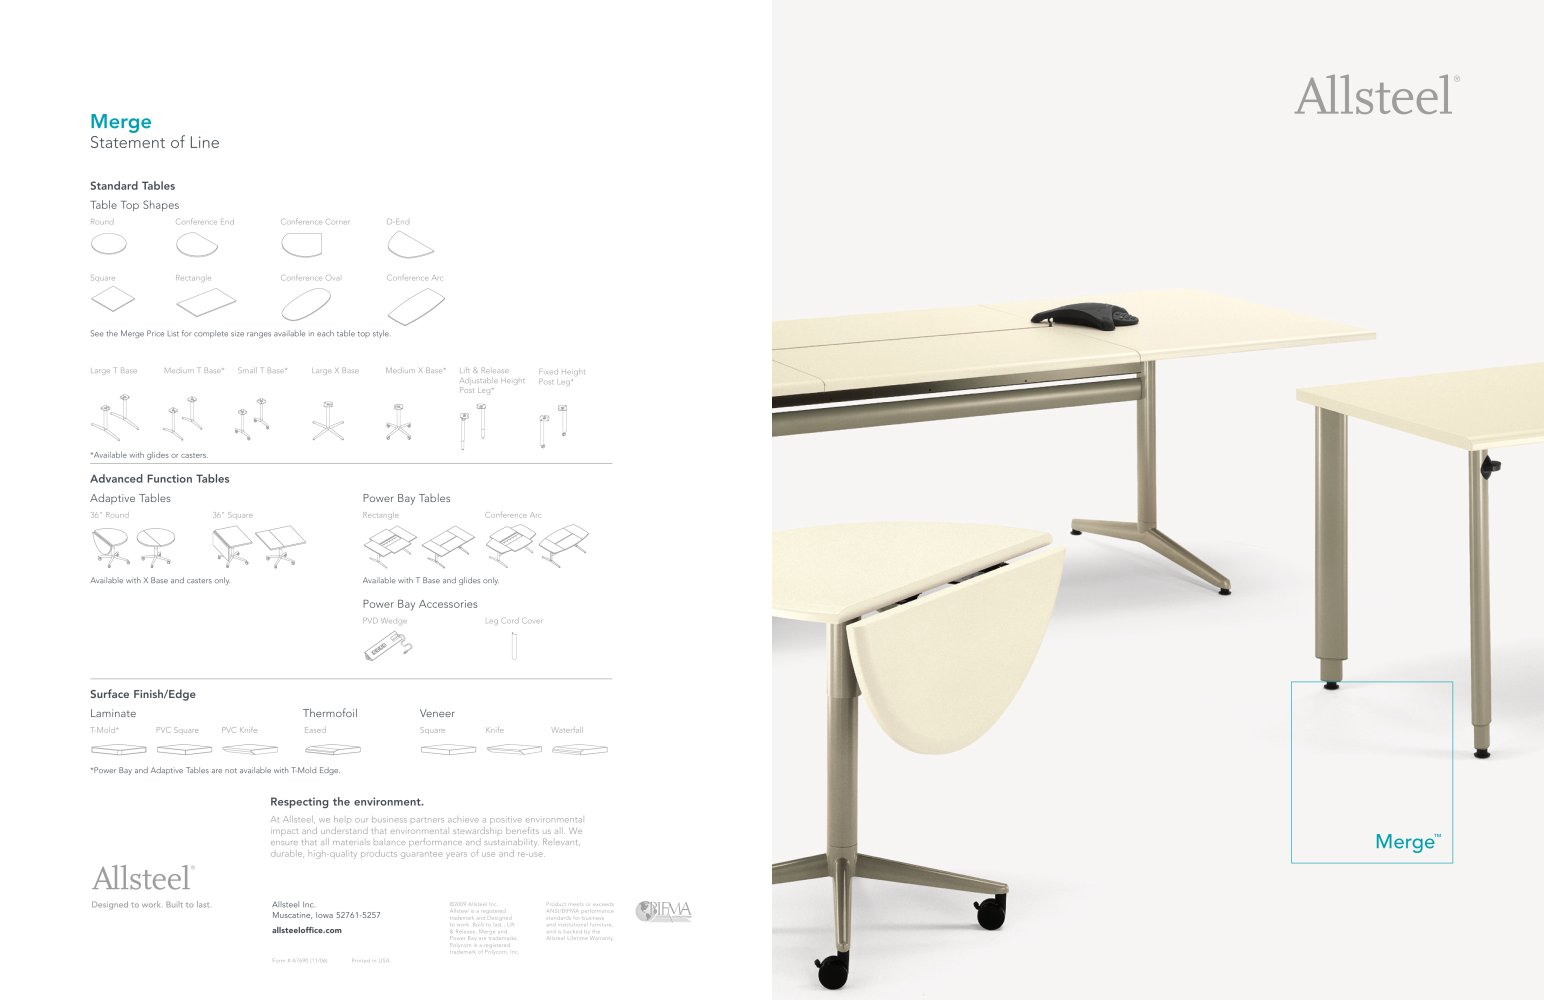 Round Function Tables Merge Table Brochure Allsteel Pdf Catalogues Documentation